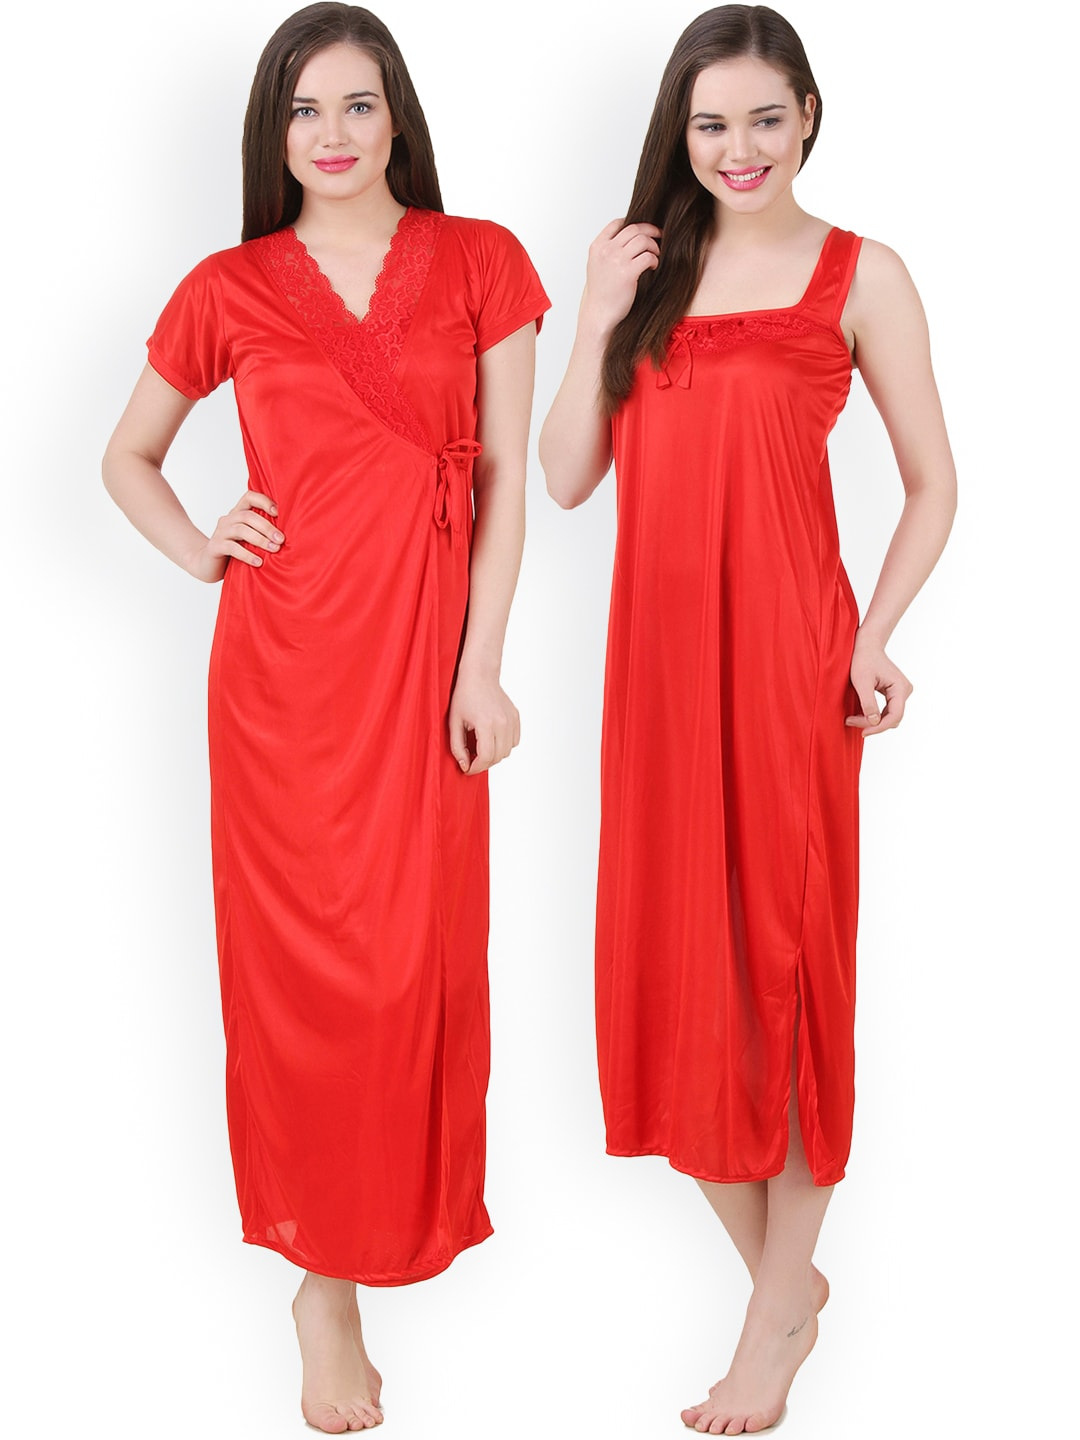 2fc21c8ea3f Of Nightdresses - Buy Of Nightdresses online in India